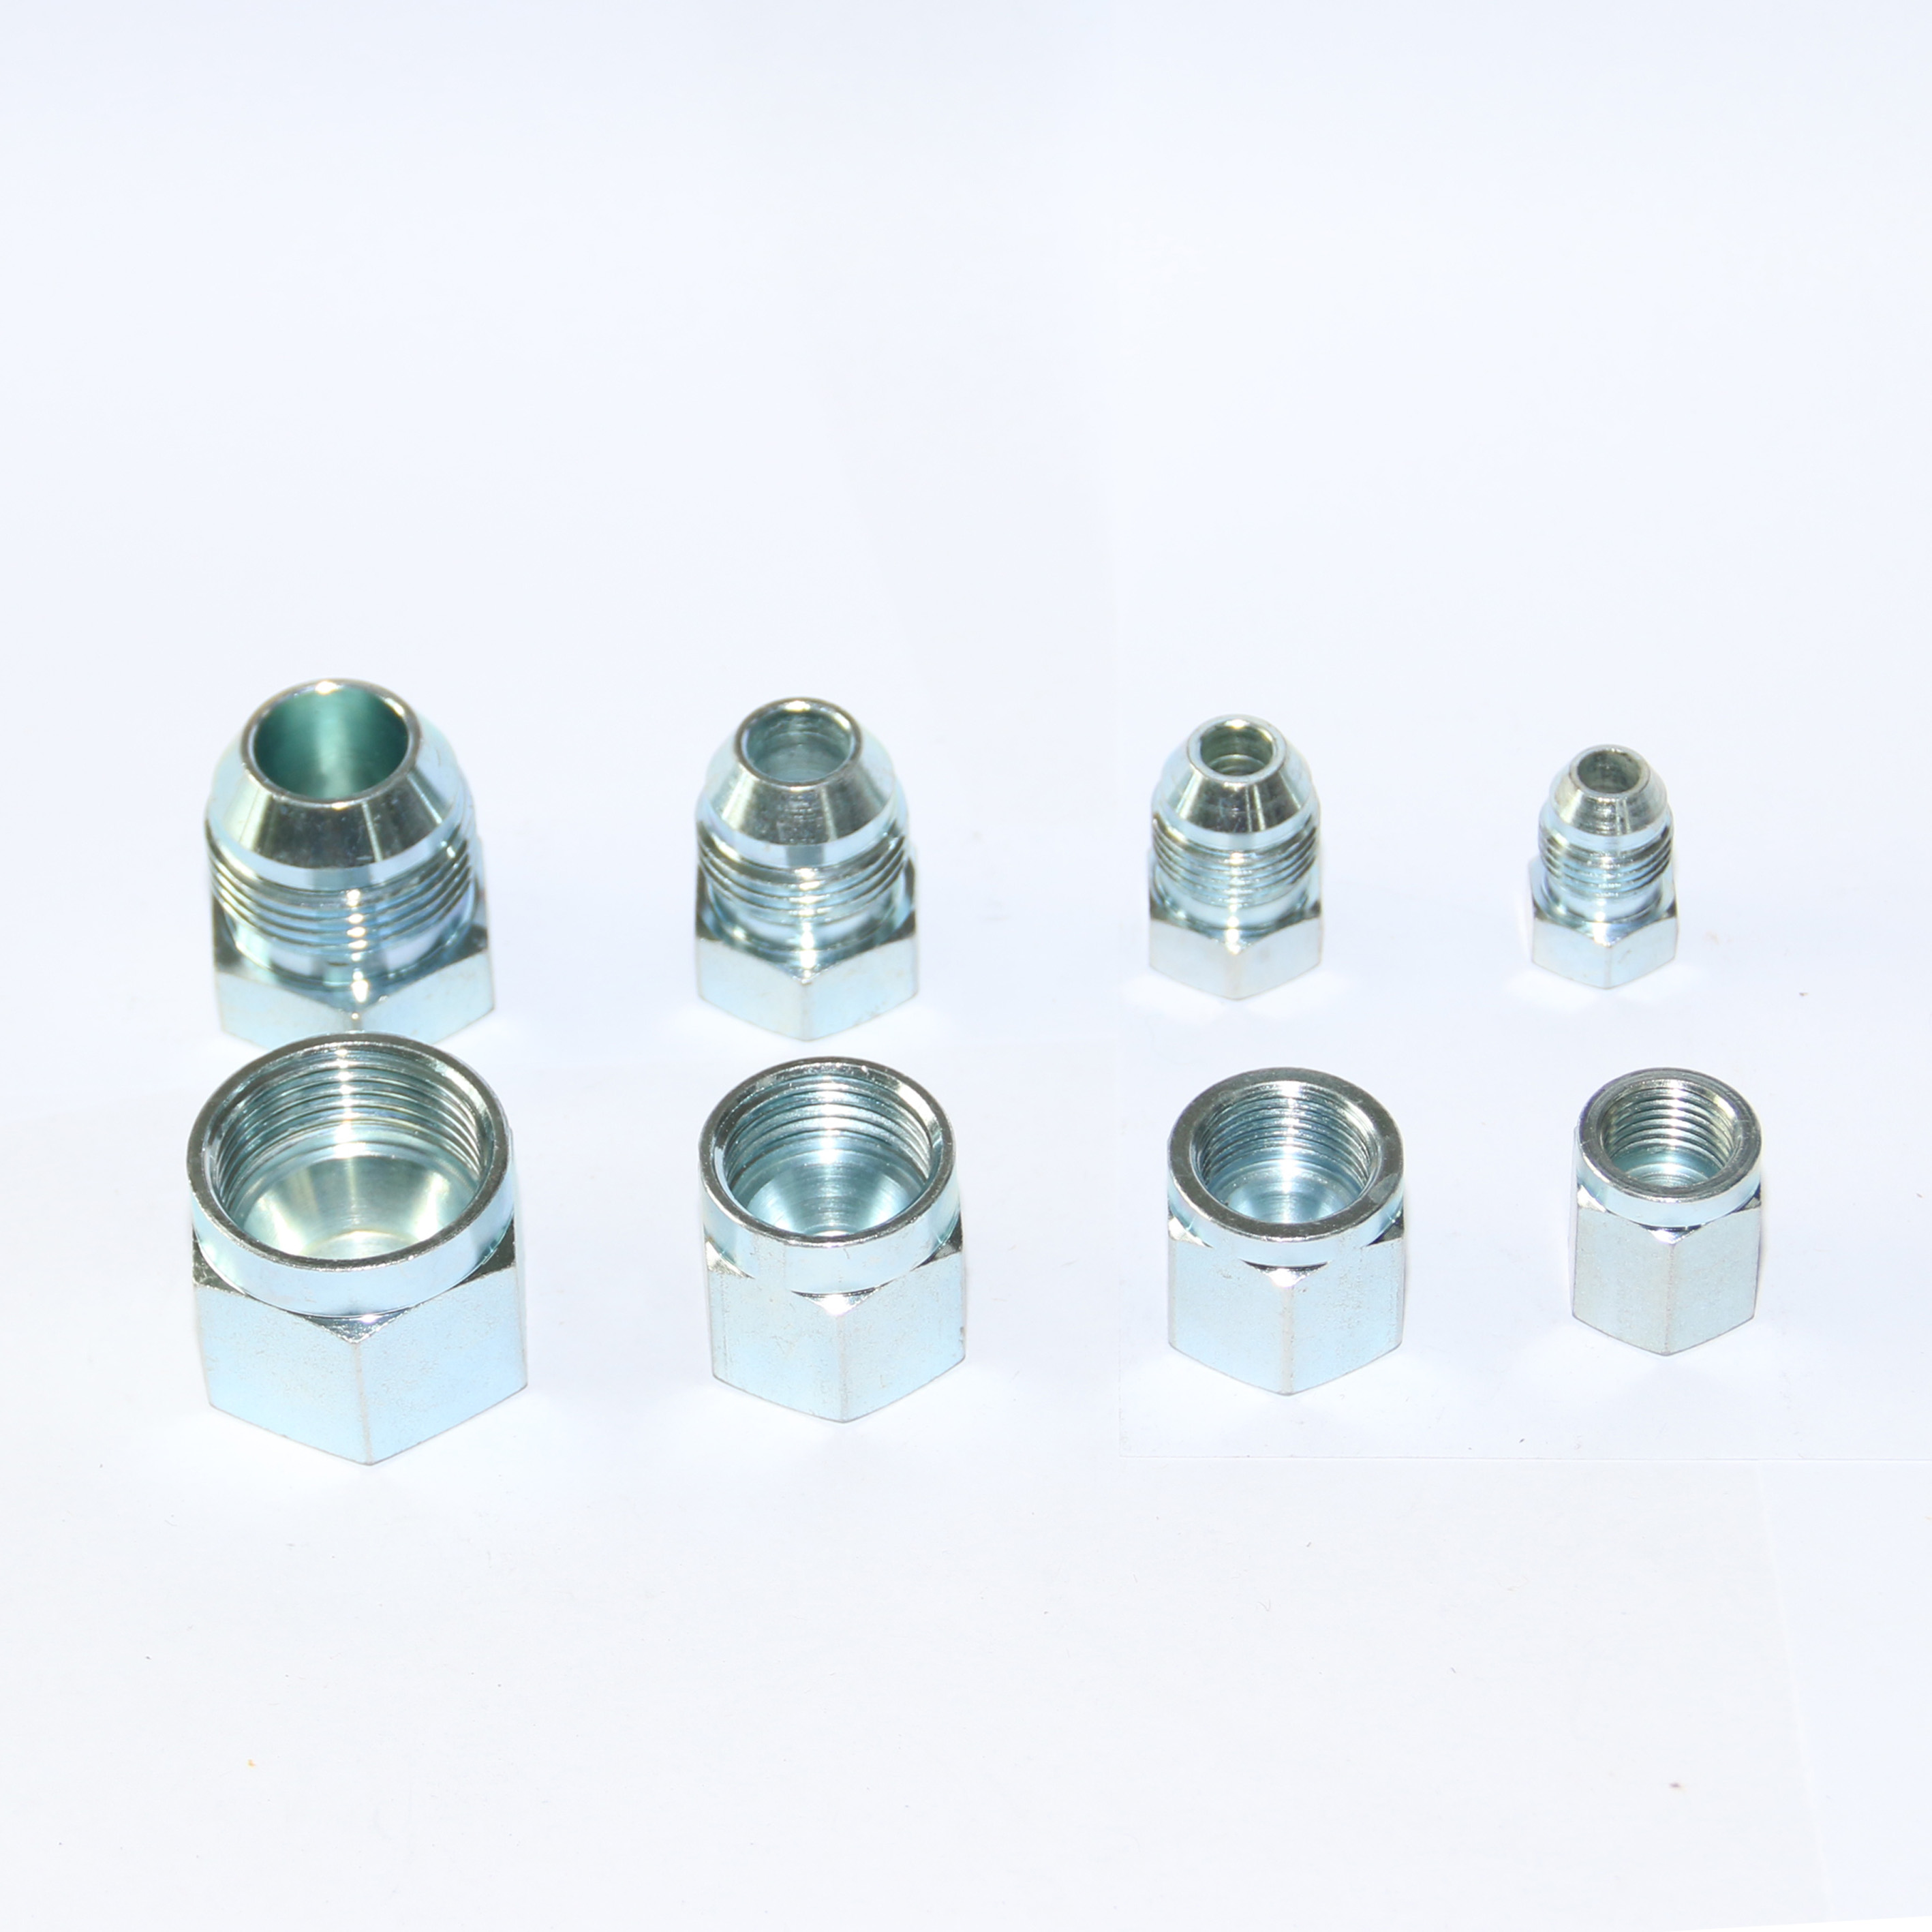 Hydraulic JIS30 Cap and Plug Adapter Fittings  for Excavator Kobelco-16 Pack